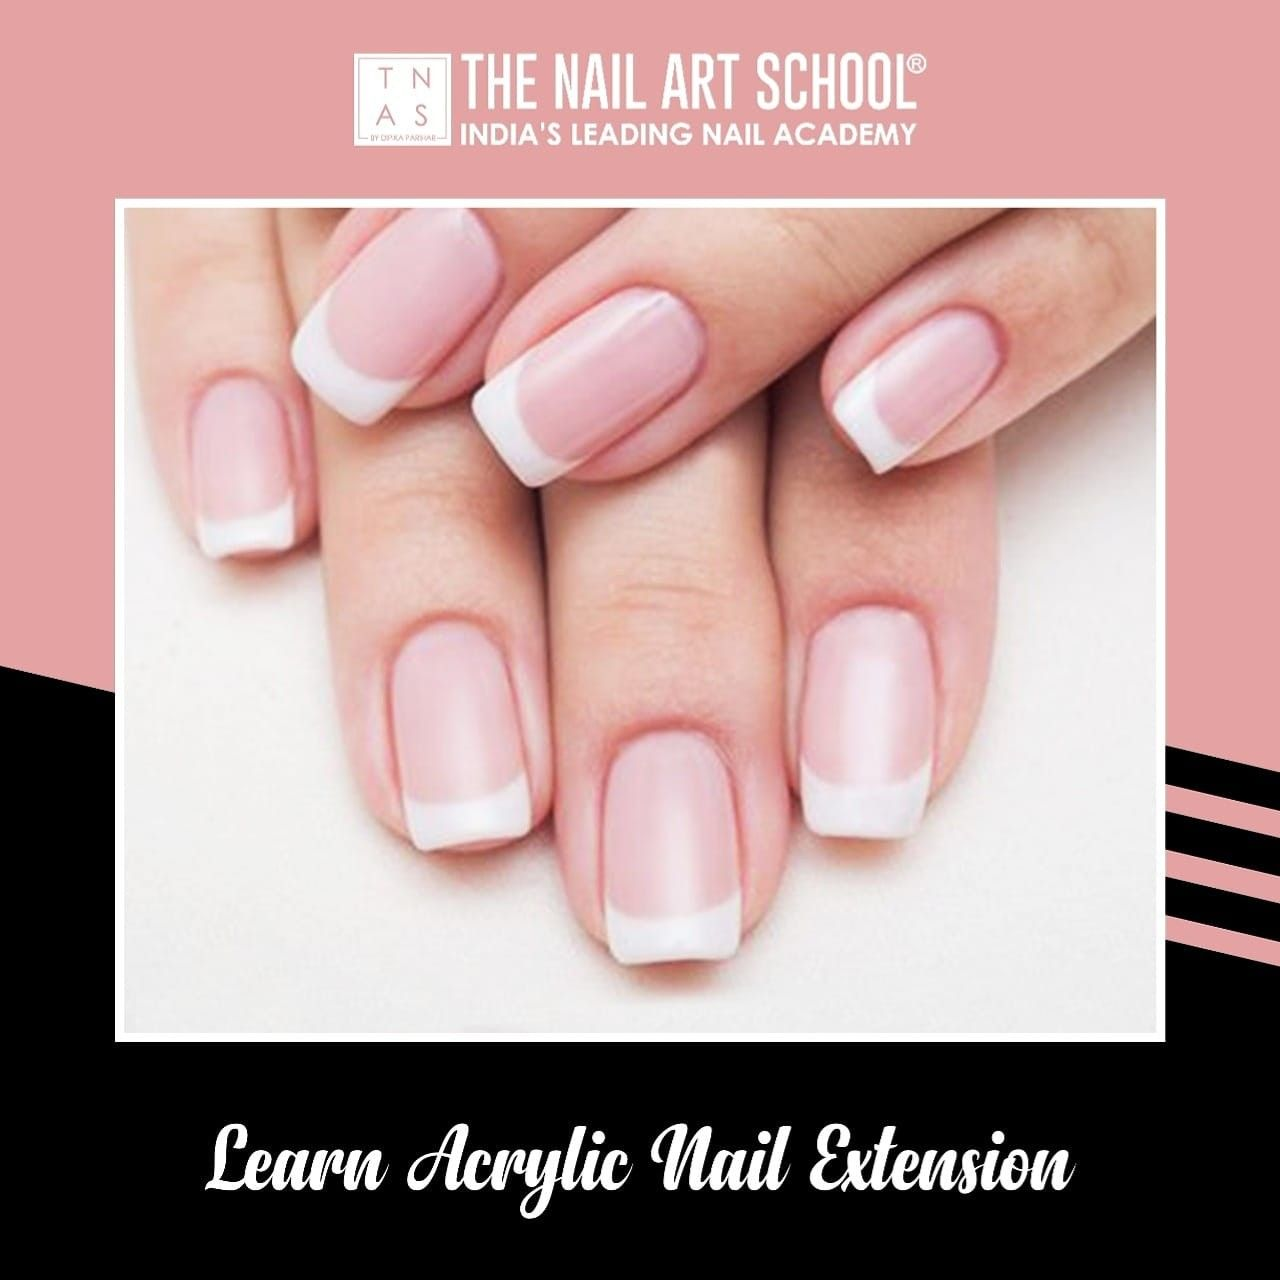 Permanent Acrylic Nail Extensions are just like the blank canvas for self expression. With just right amount of knowledge, you can turn your nails into a masterpiece✨  Learn Permanent Acrylic Nail Extensions with perfect techniques at The Nail Art School.    #AcrylicNailExtension #NailArtCourses #NailArt #Nails #NailArtDesign #NailTechnicians #nailtrends #LearnNailArt #NailCourse #DIY #NailPro #NailTechnician #NailExtensions #Learn #Enrol #gelpolish #nailpolish #GLAMNailProduct #RNailLounge